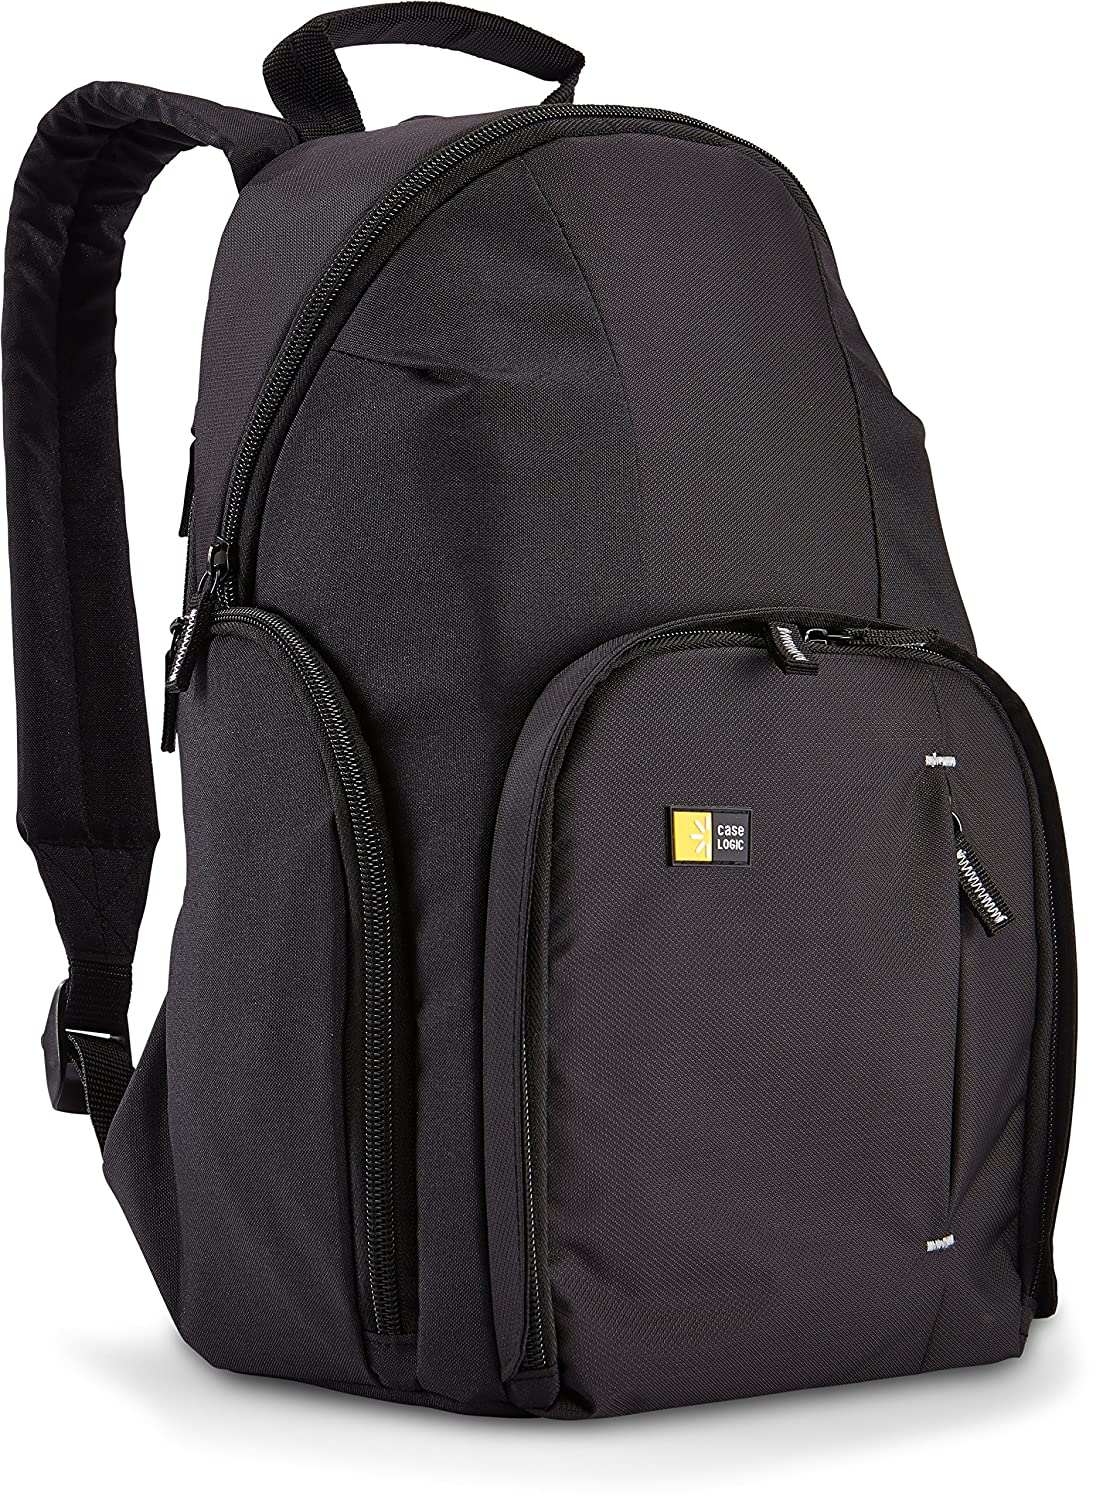 Case Logic DSLR Compact Backpack TBC 411